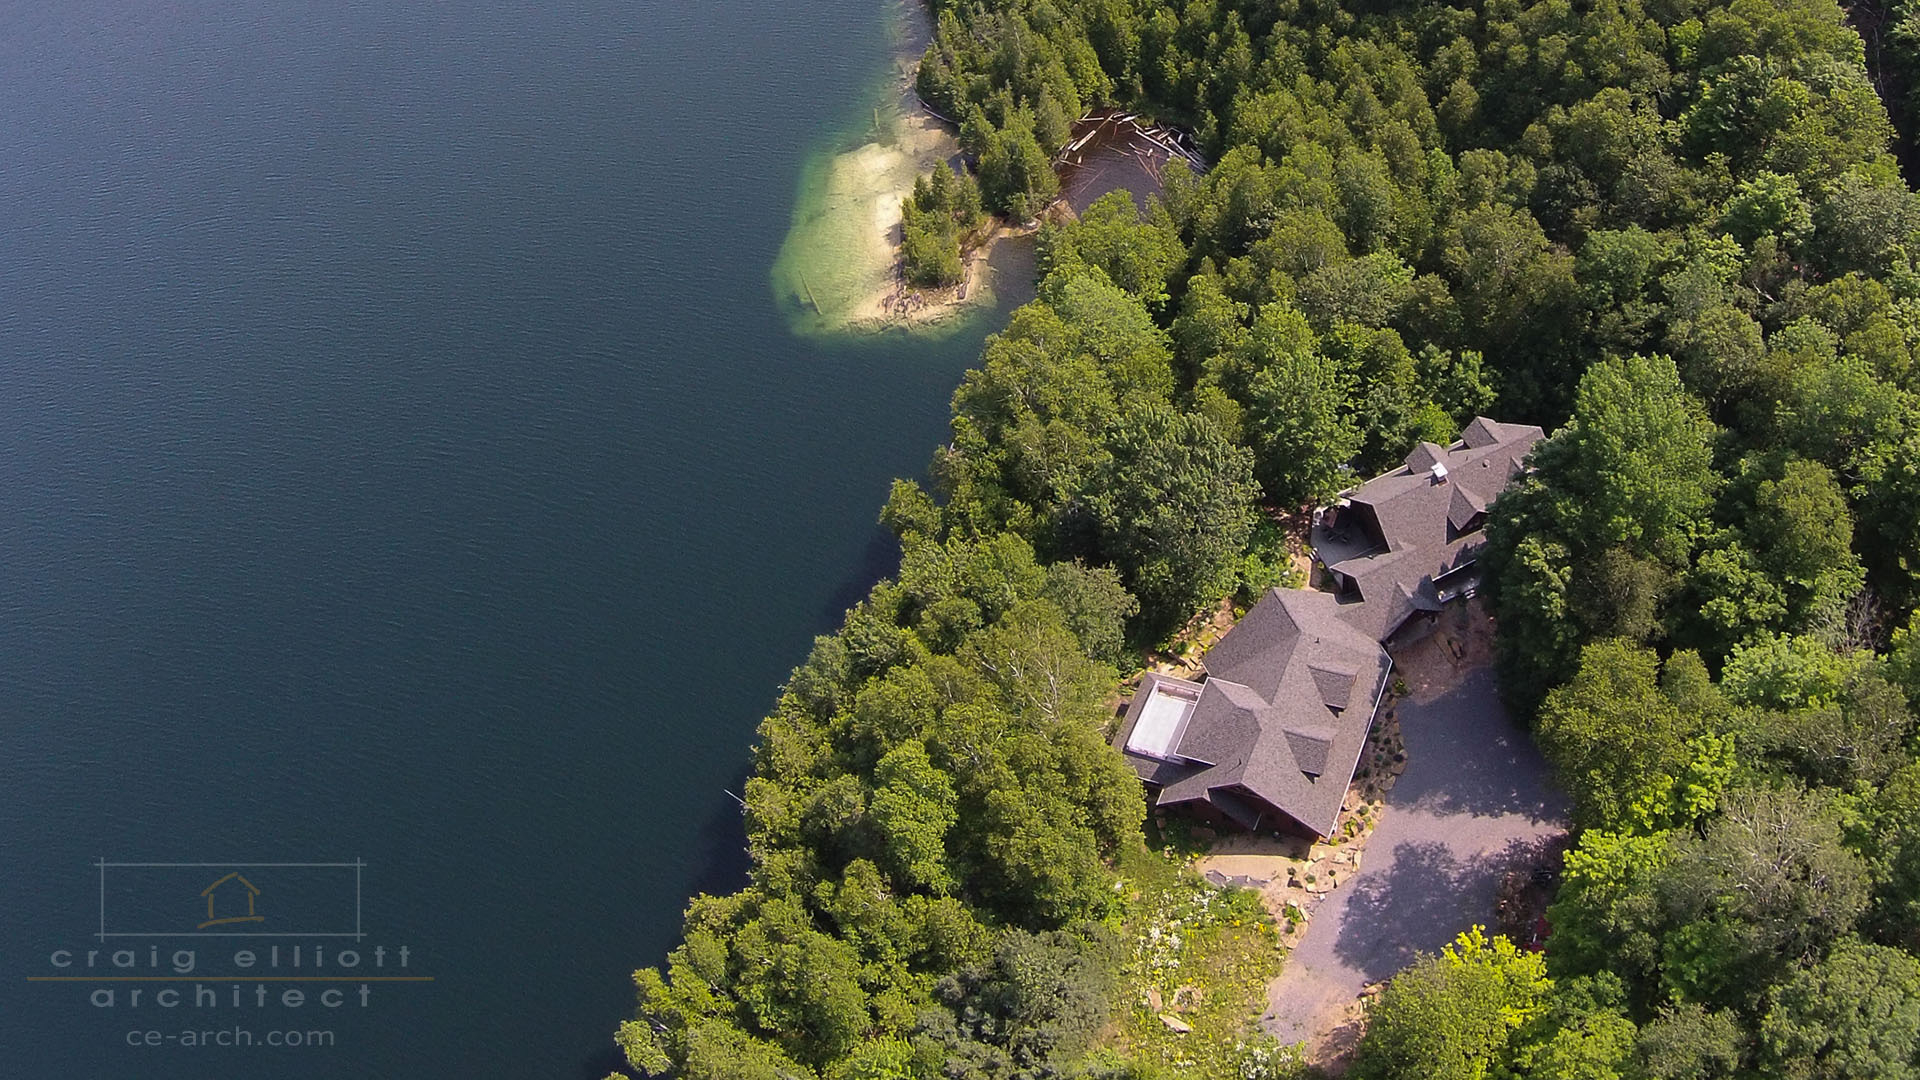 architect designed home - bancroft - drone view